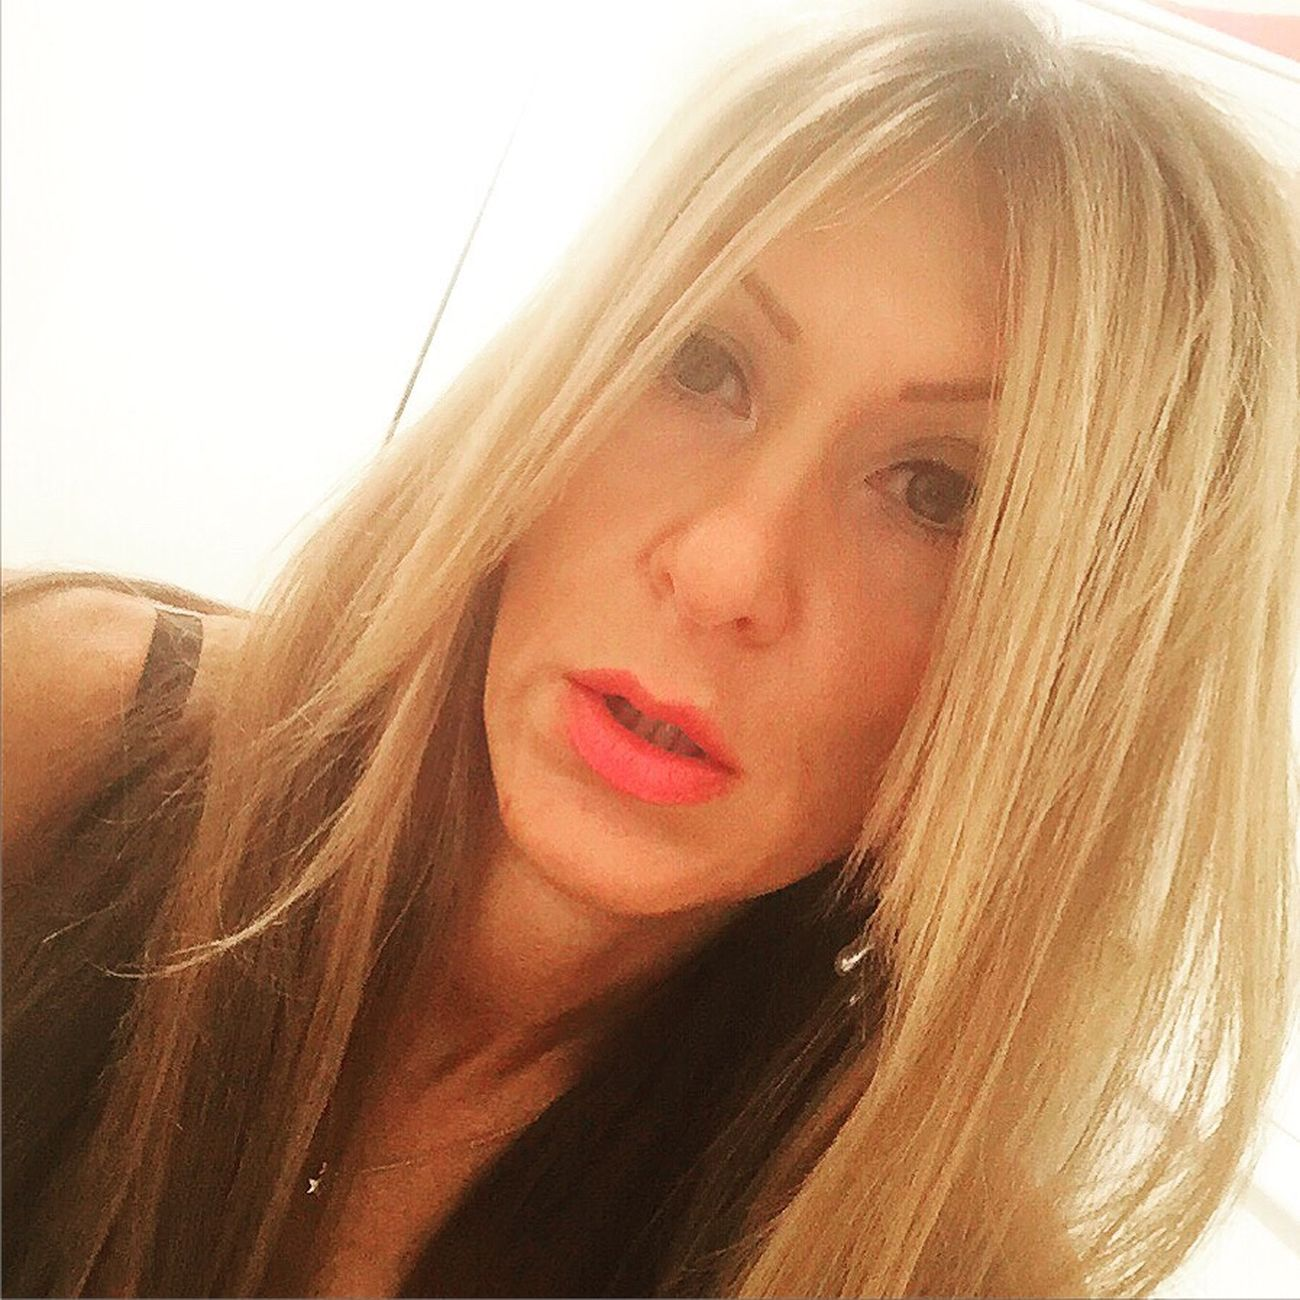 Bed head !! That's Me Hello World Natural Lips Single ♥ Entrepreneur Blondie Popular Photo Photographer Musician Singer  Lips #love #smile #pink #cute #pretty LoveLife❤️ Gorgeous Modelsearch Fitness Longhair Free Spirit Employ Me! LONDON❤ Bmw I ♥ It Beauty Eye4photography  Rockchick Cute Modelshoot